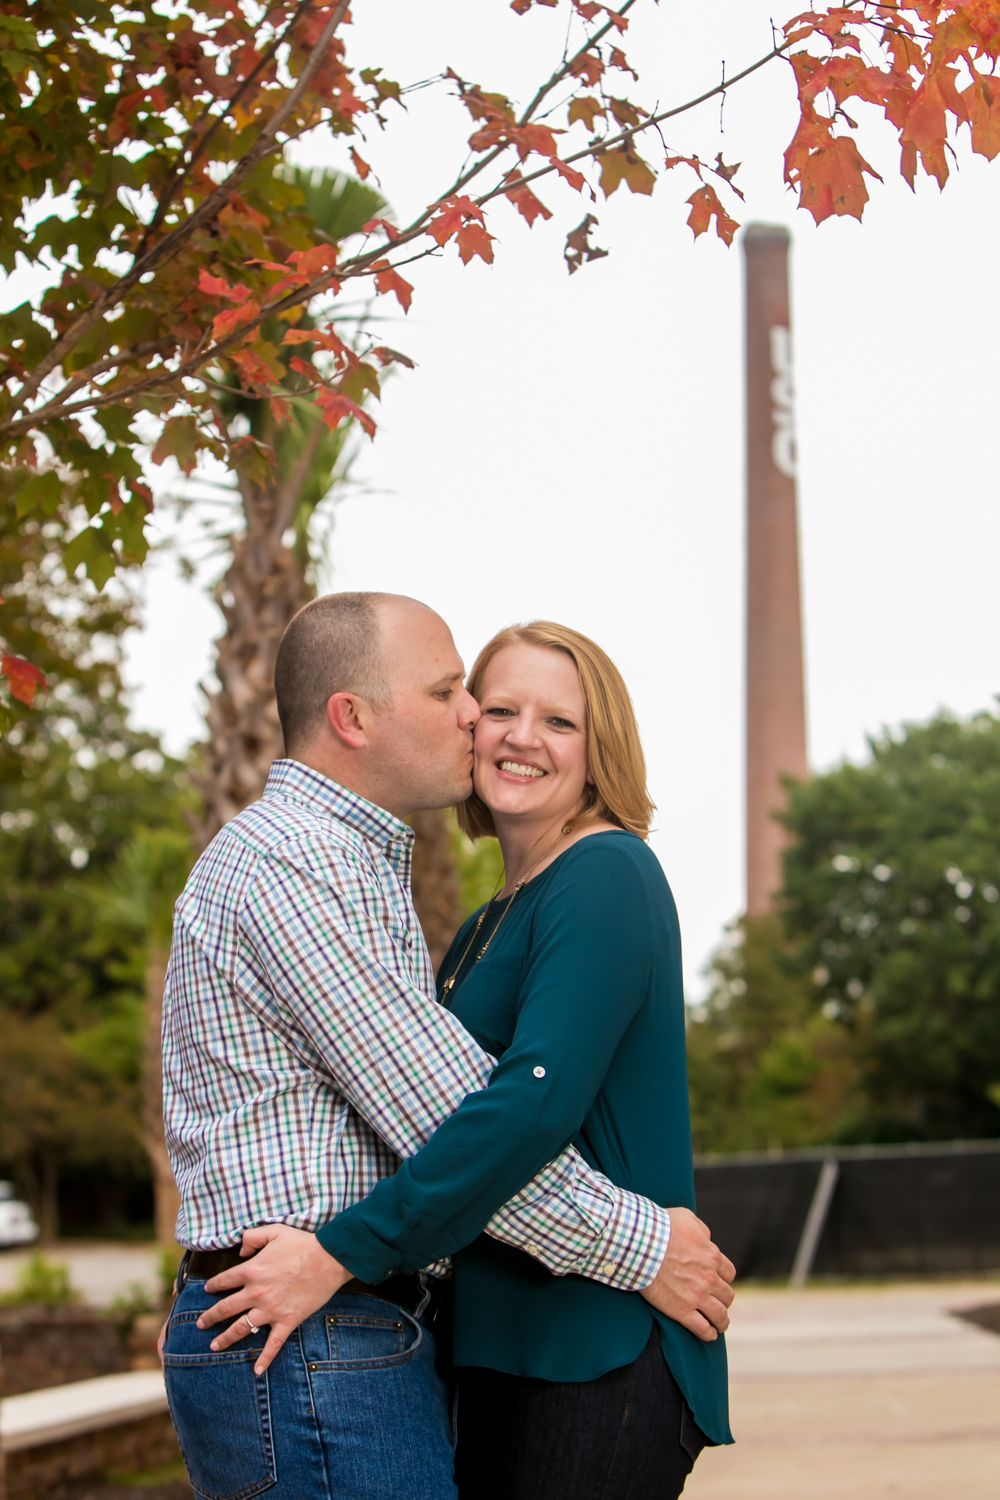 A engagment portrait at the University of South Carolina Horseshoe in Columbia, SC